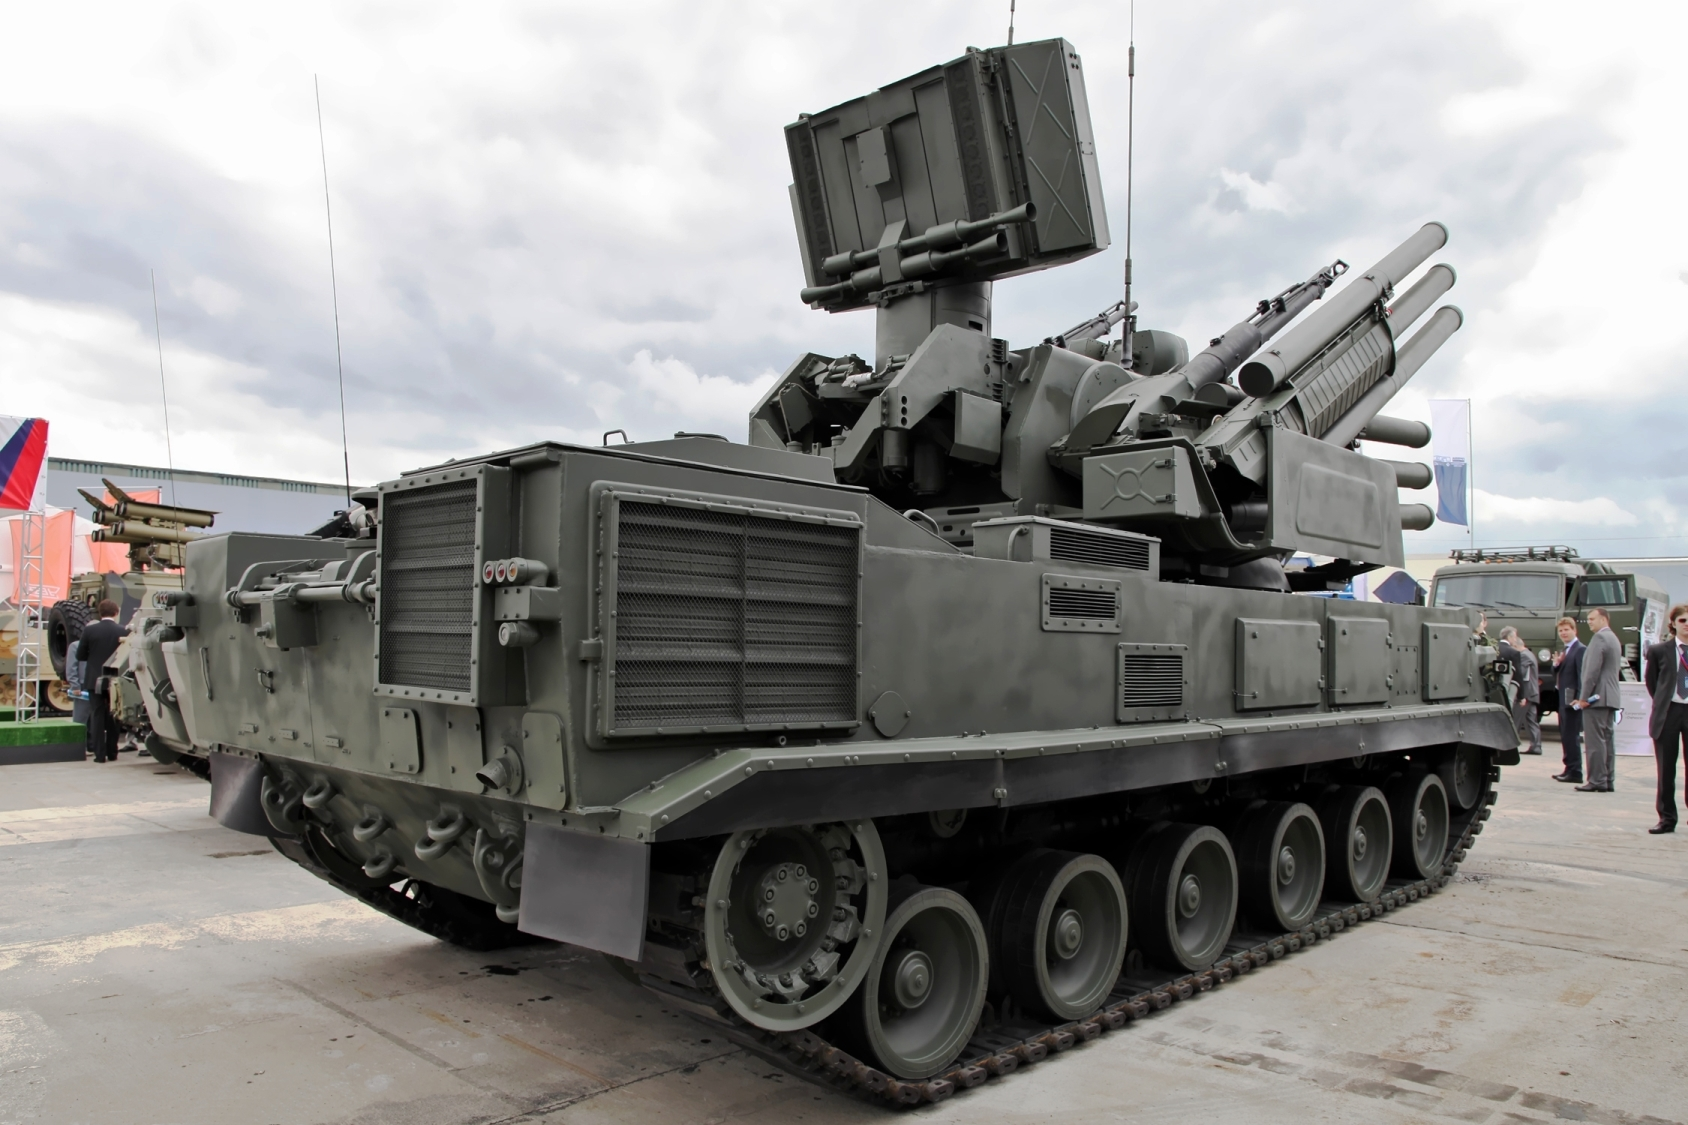 These are the weapons that Russia is pouring into Eastern Ukraine